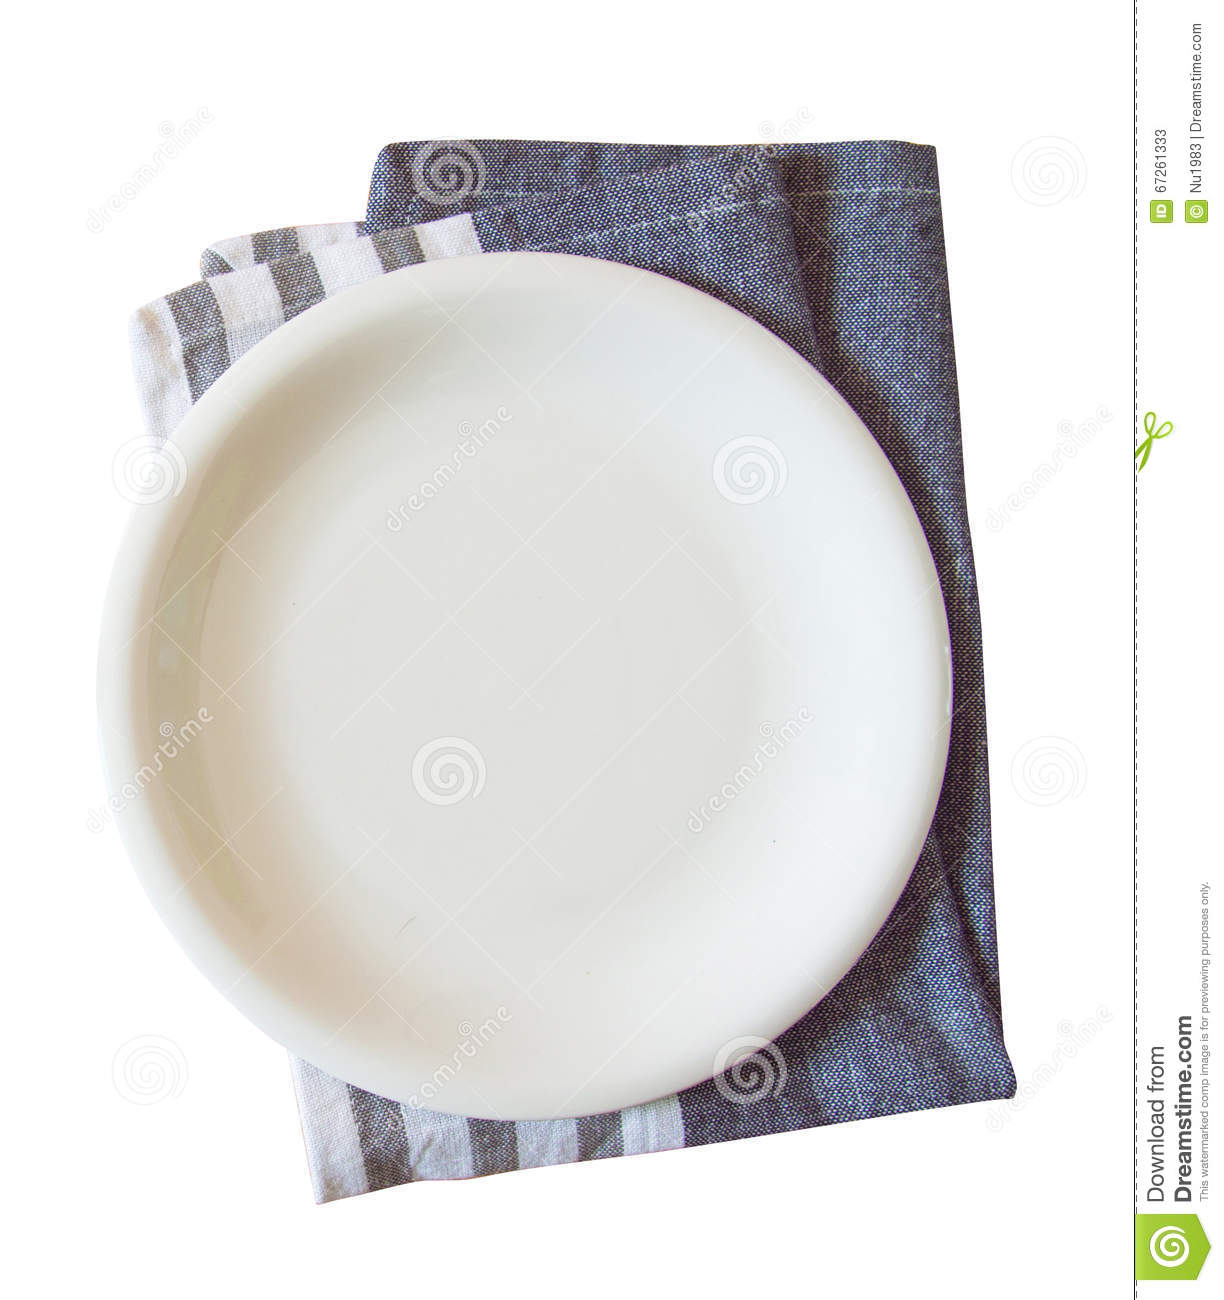 Empty plate and towel isolated